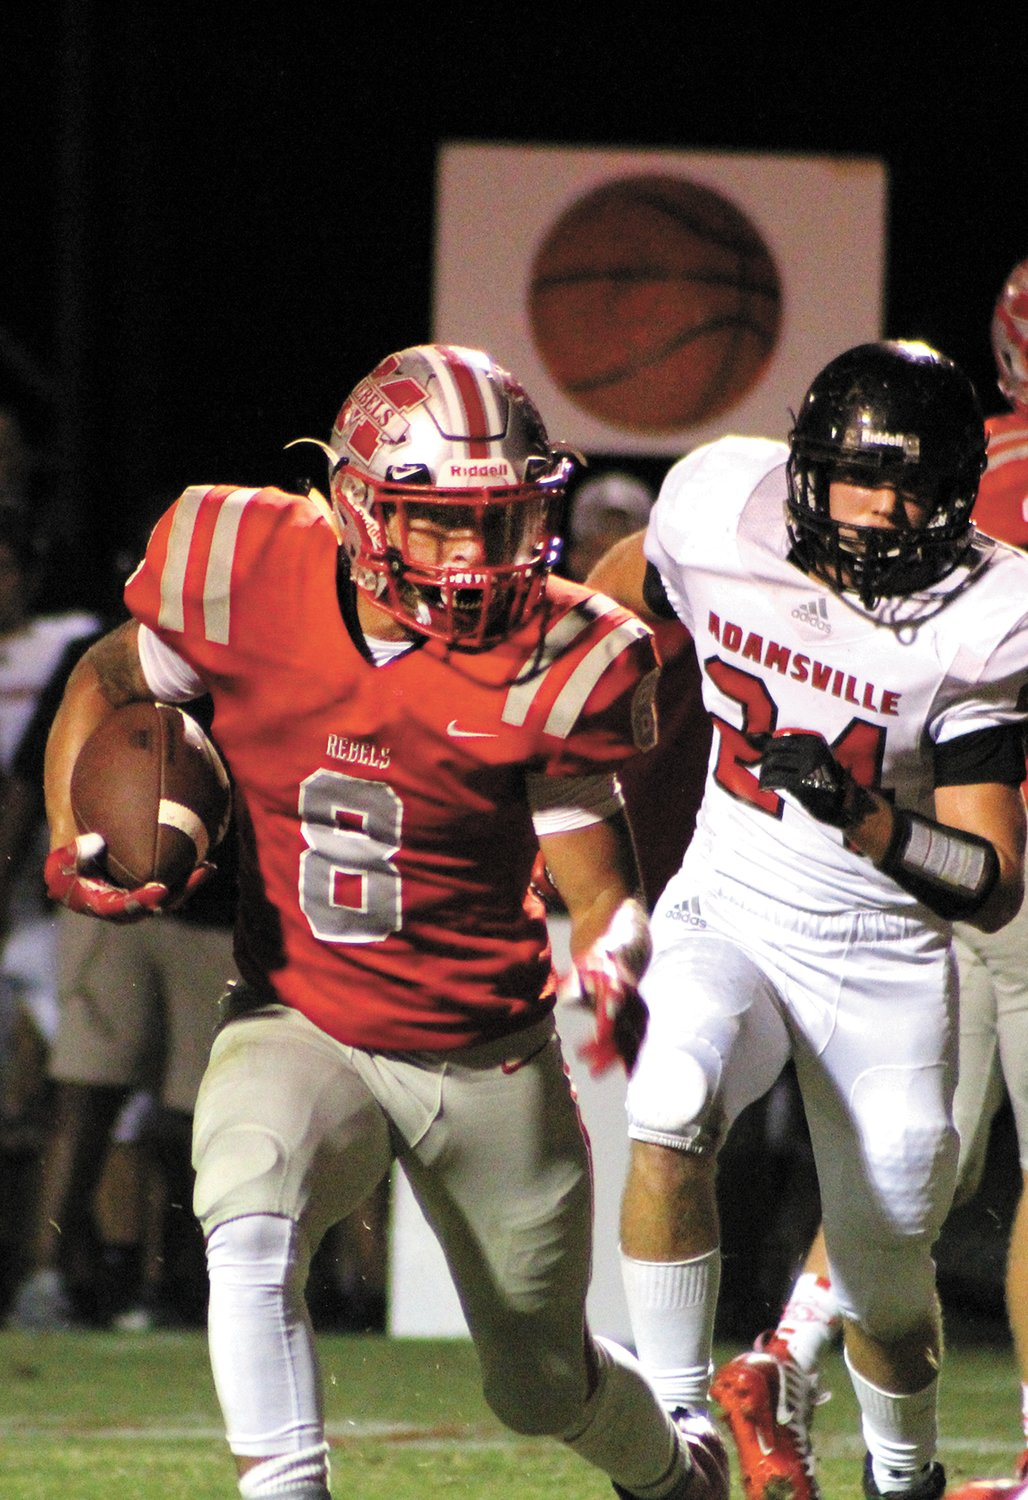 Joseph Miller ran for 140 yards and two scores against Adamsville.